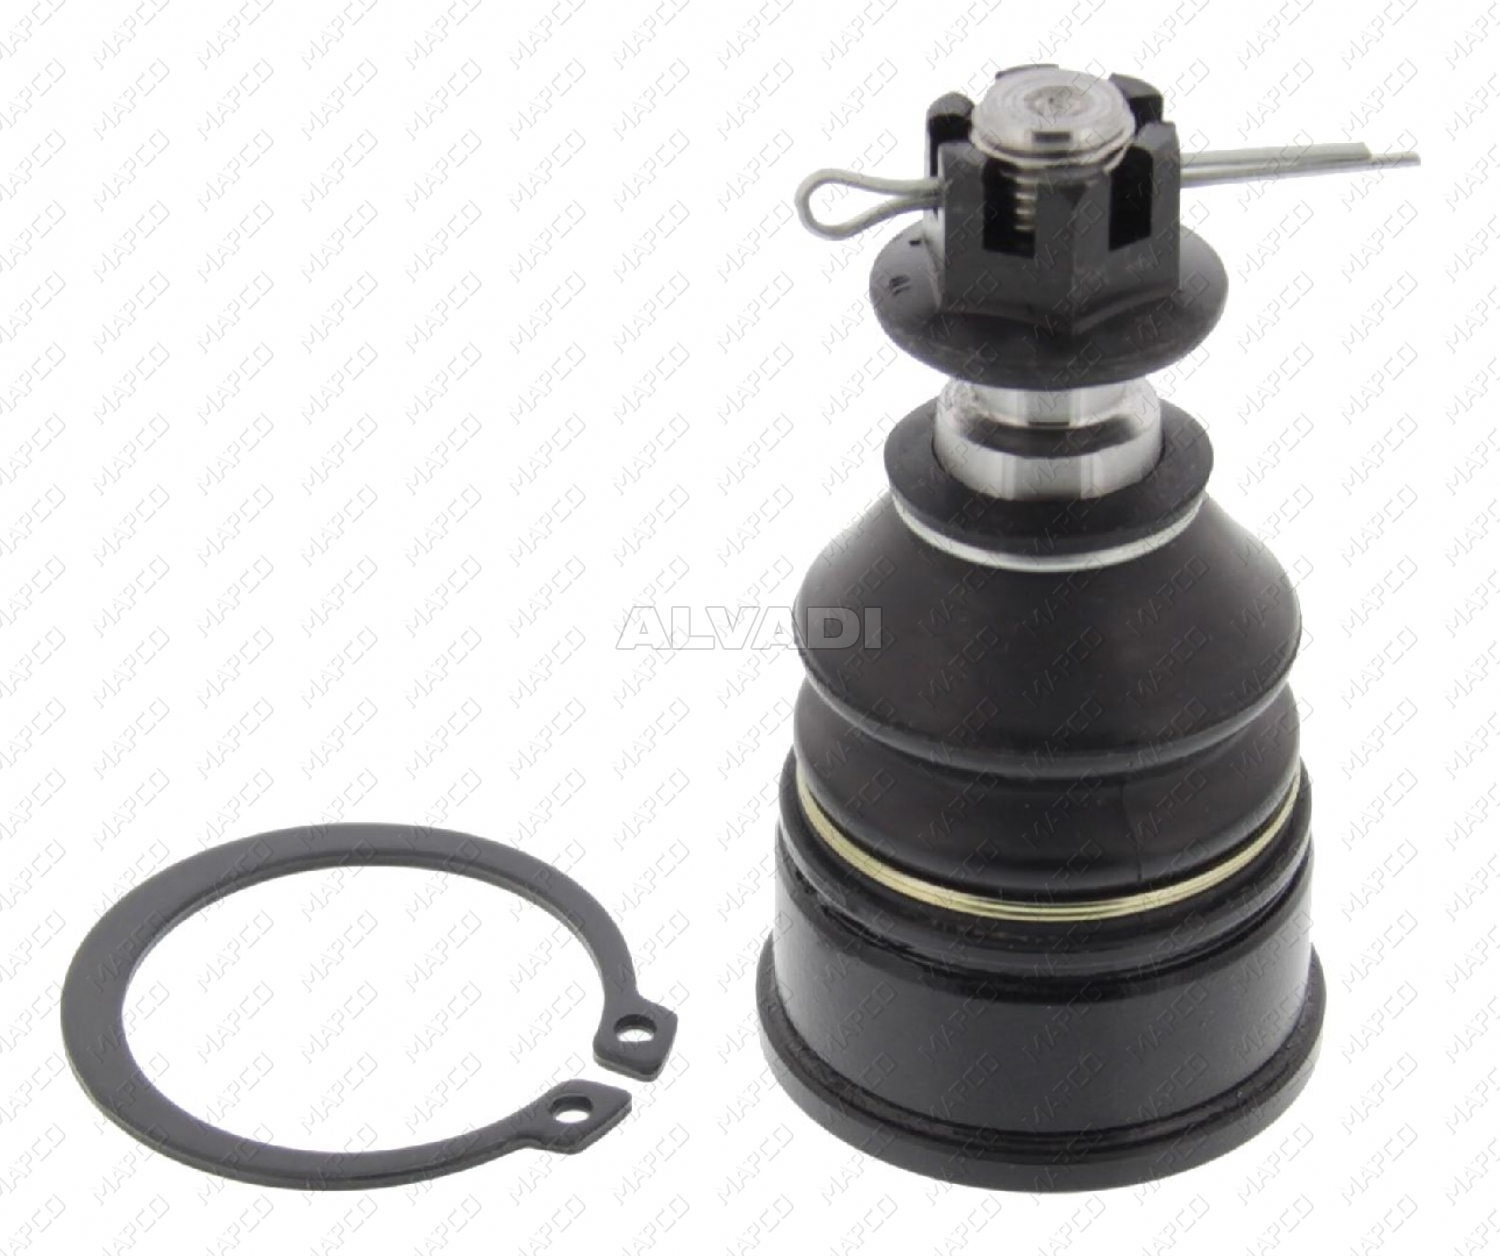 Right Ball Joint Replaces 51220-S5A-003 51220-S5A-J10 Delphi TC1299 Left